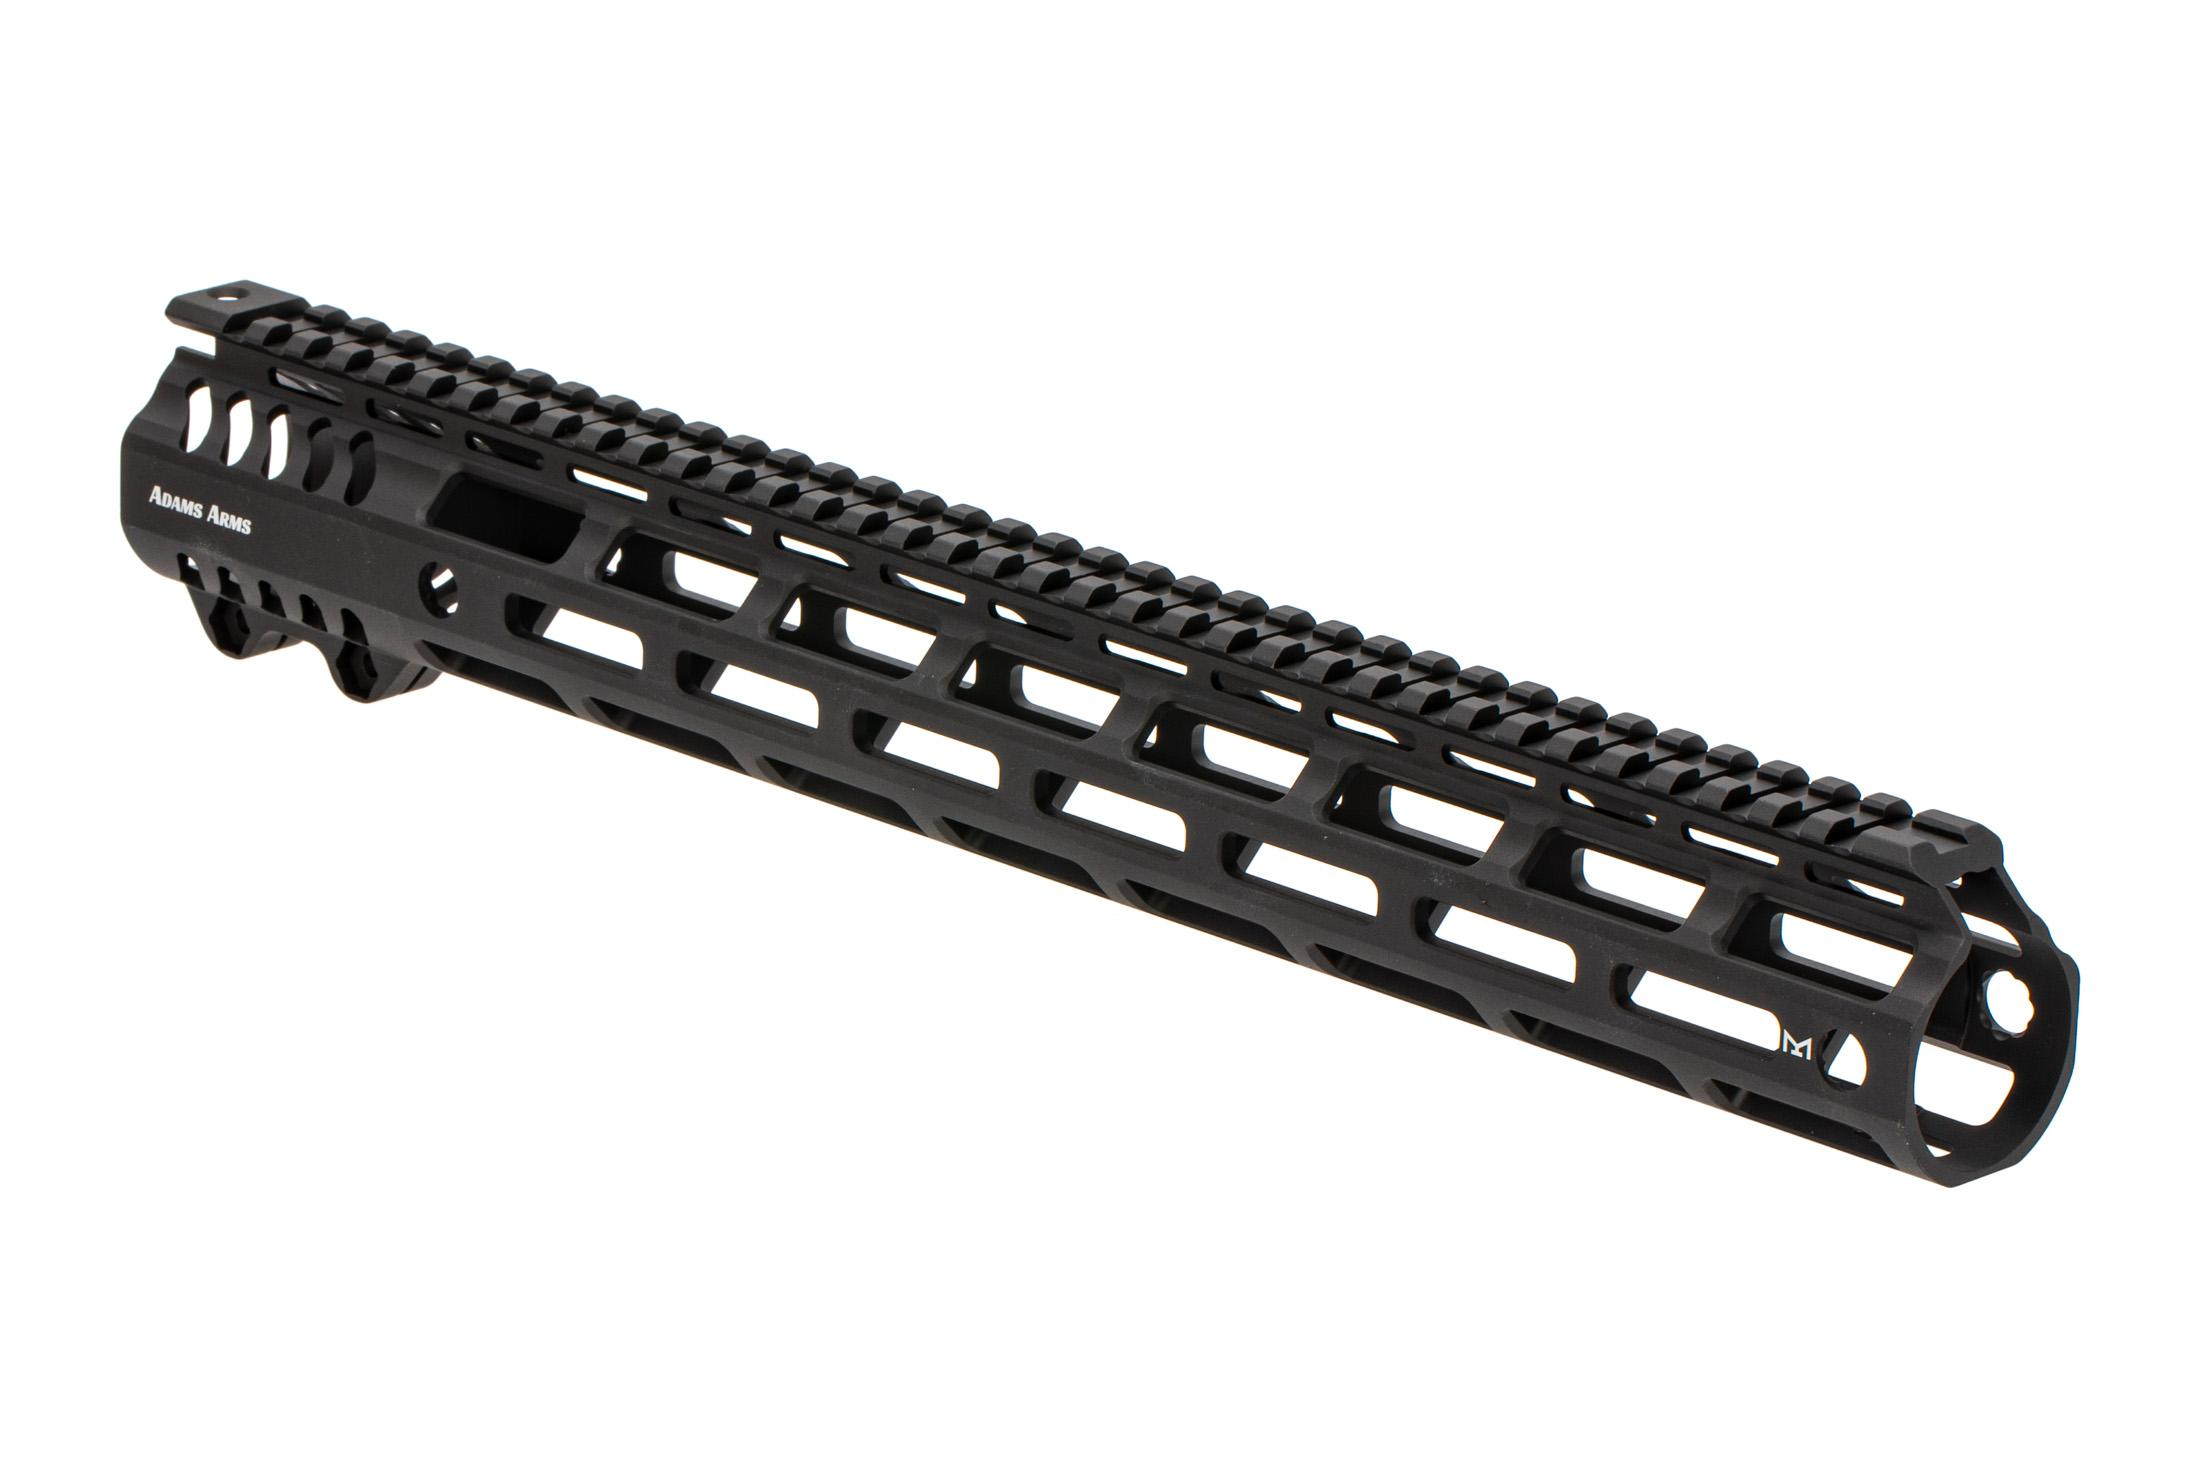 Adams Arms P Series M-LOK 308 handguard features a scalloped top rail